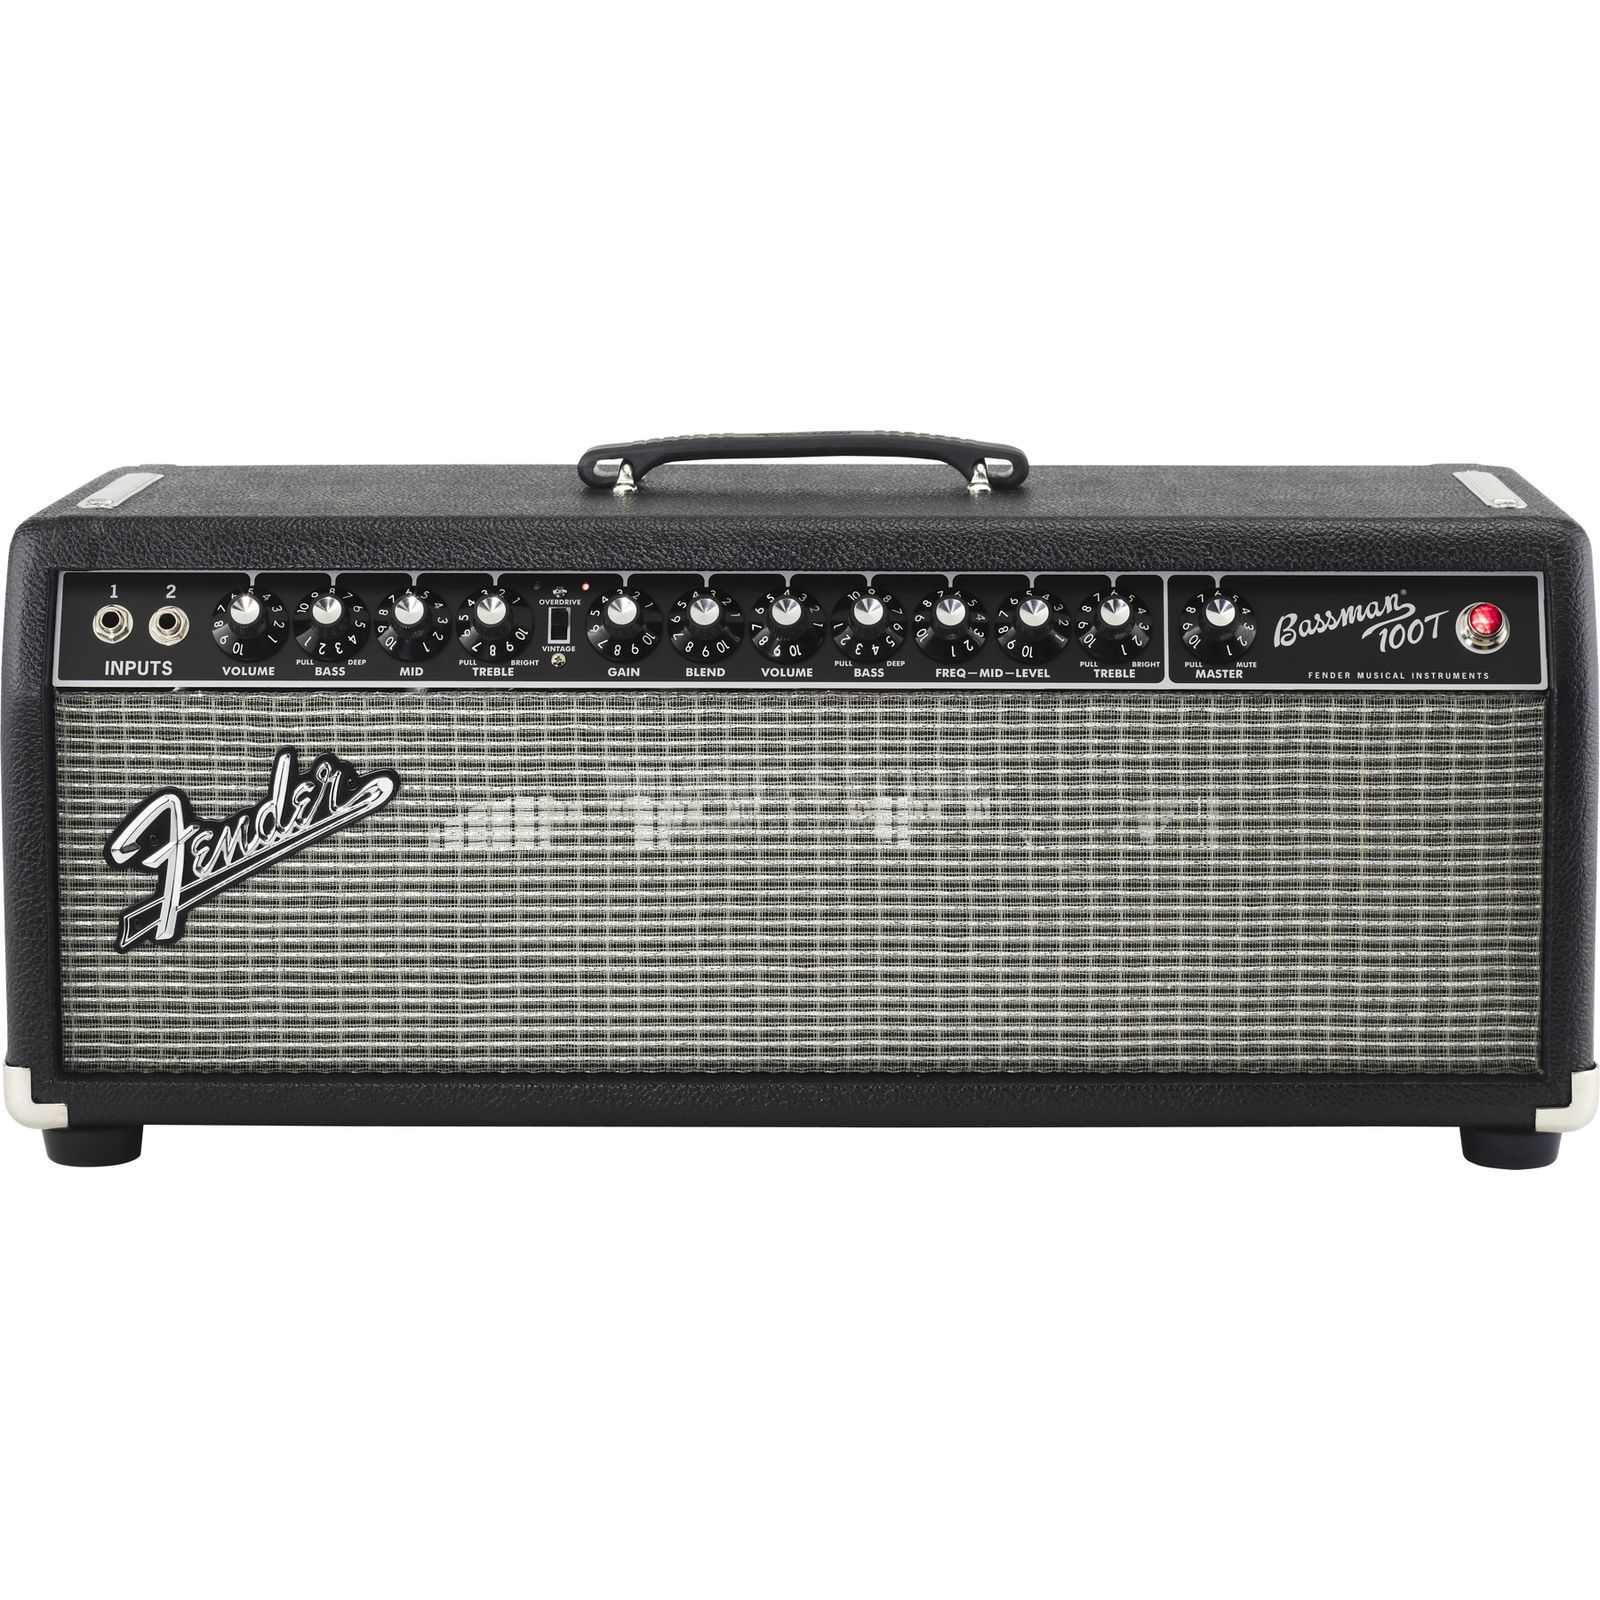 Fender basman 100T Head  Productafbeelding